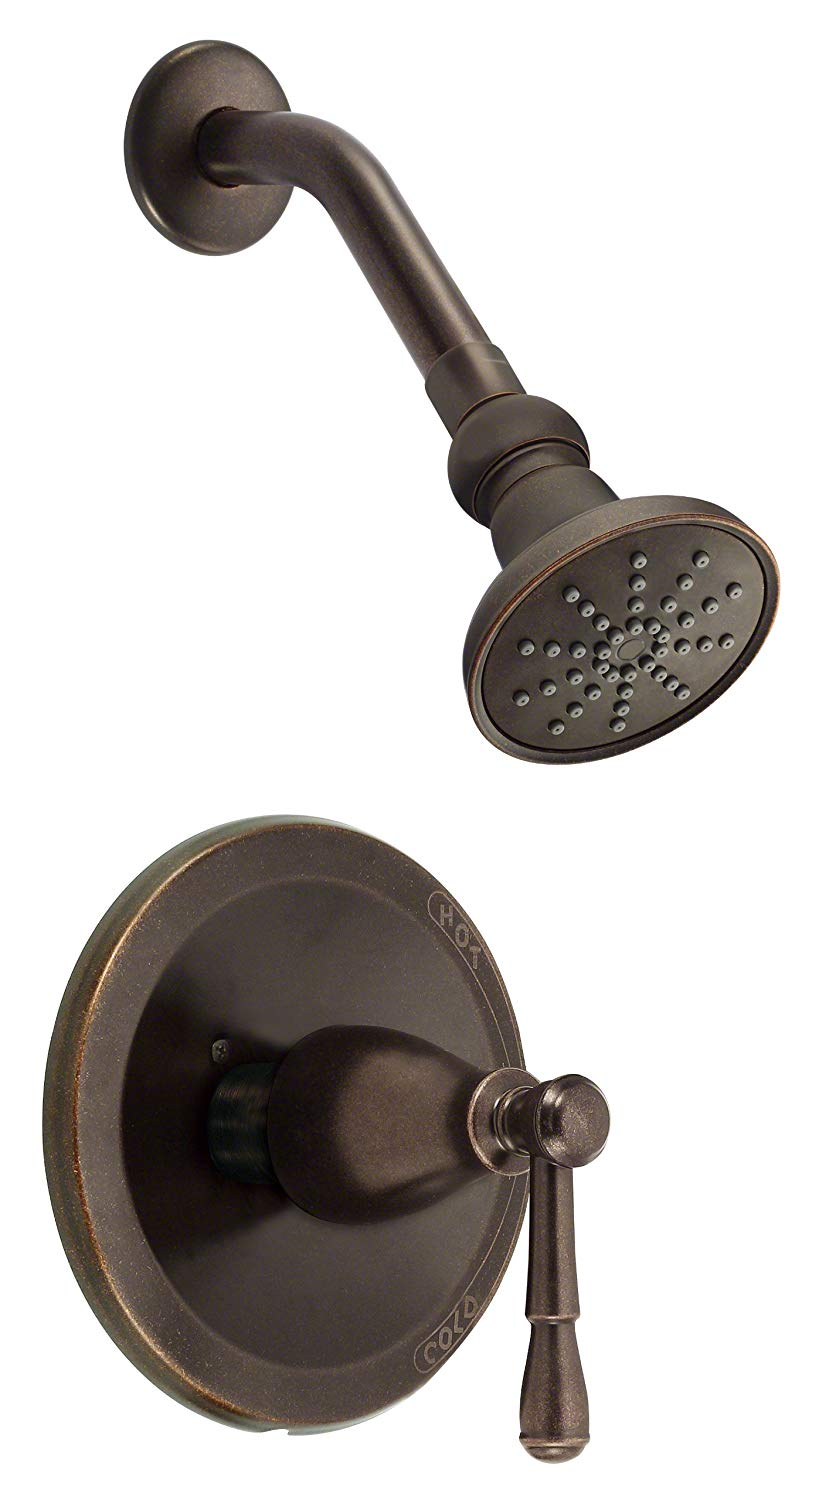 Danze D501515brt Eastham Single Handle Shower Trim Kit 1 75 Gpm Valve Not Included Tumbled Bronze